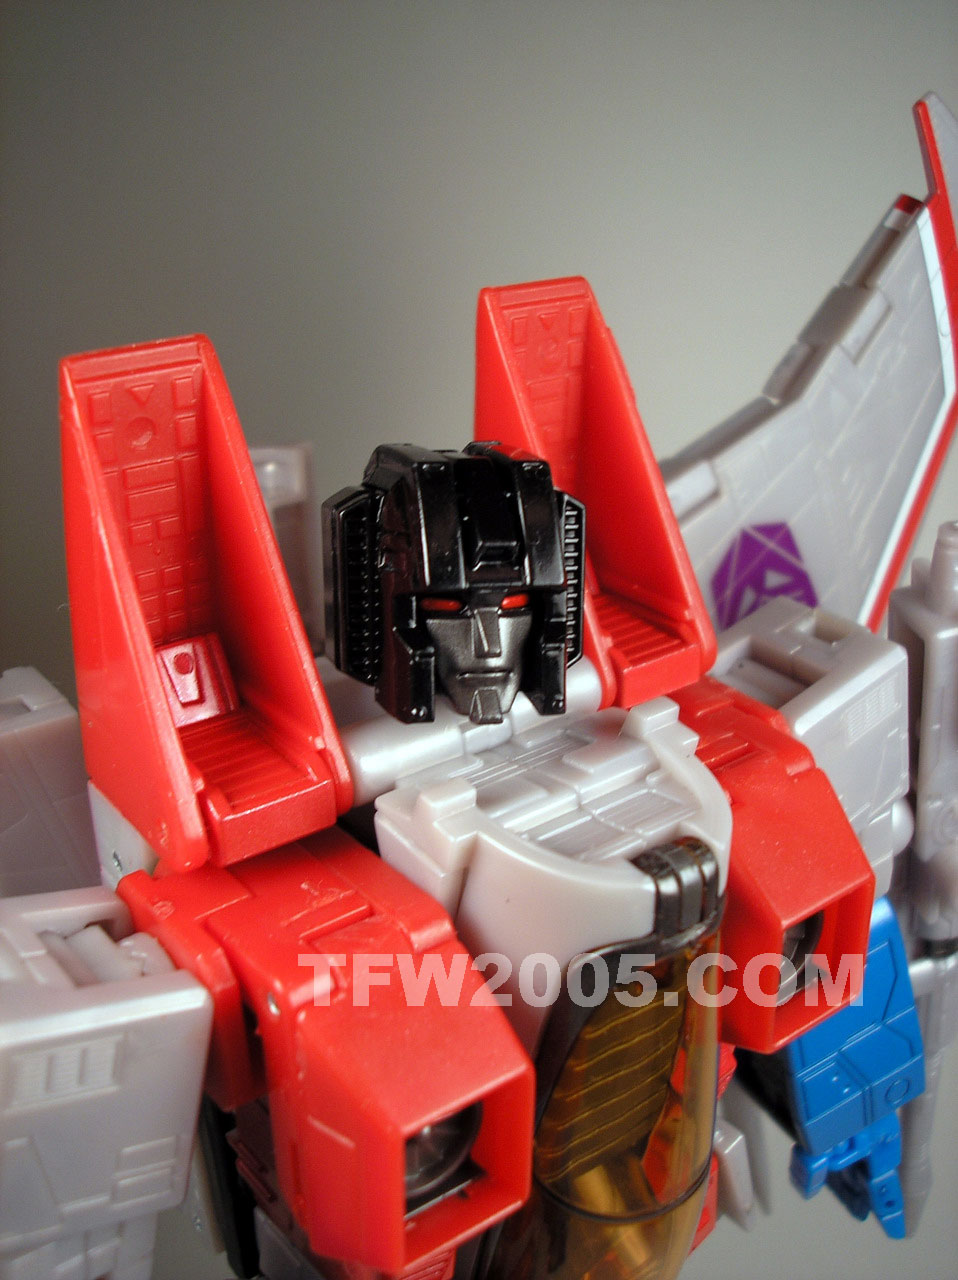 MP11 Masterpiece Starscream V2 Review-mp11-masterpiece-starscream-24.jpg